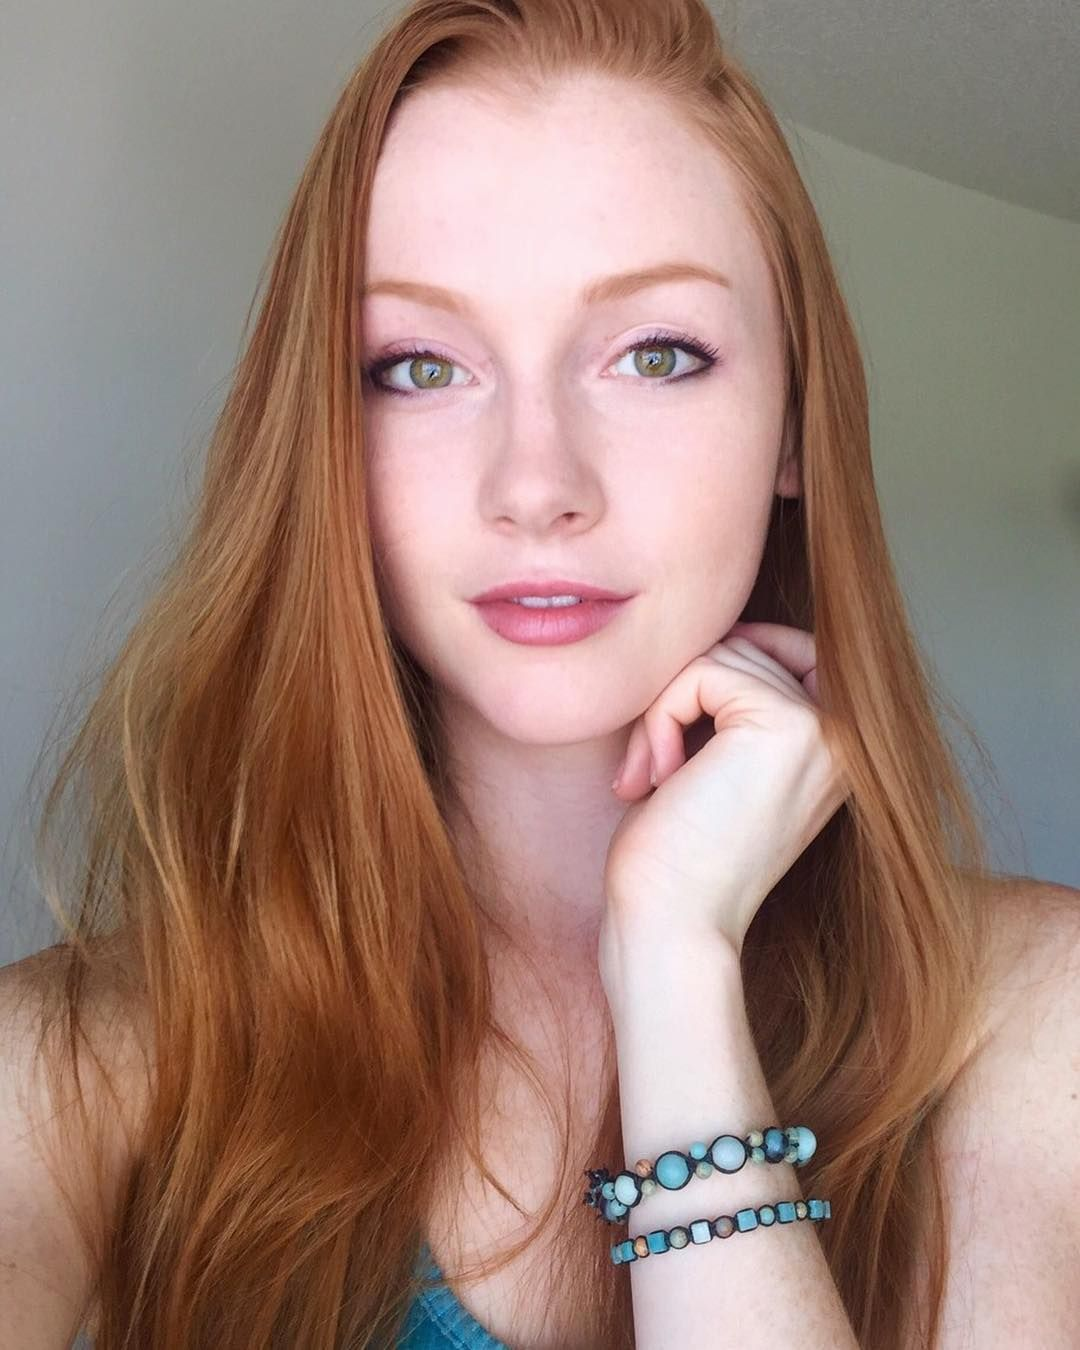 Remarkable, very Teens with red face porn